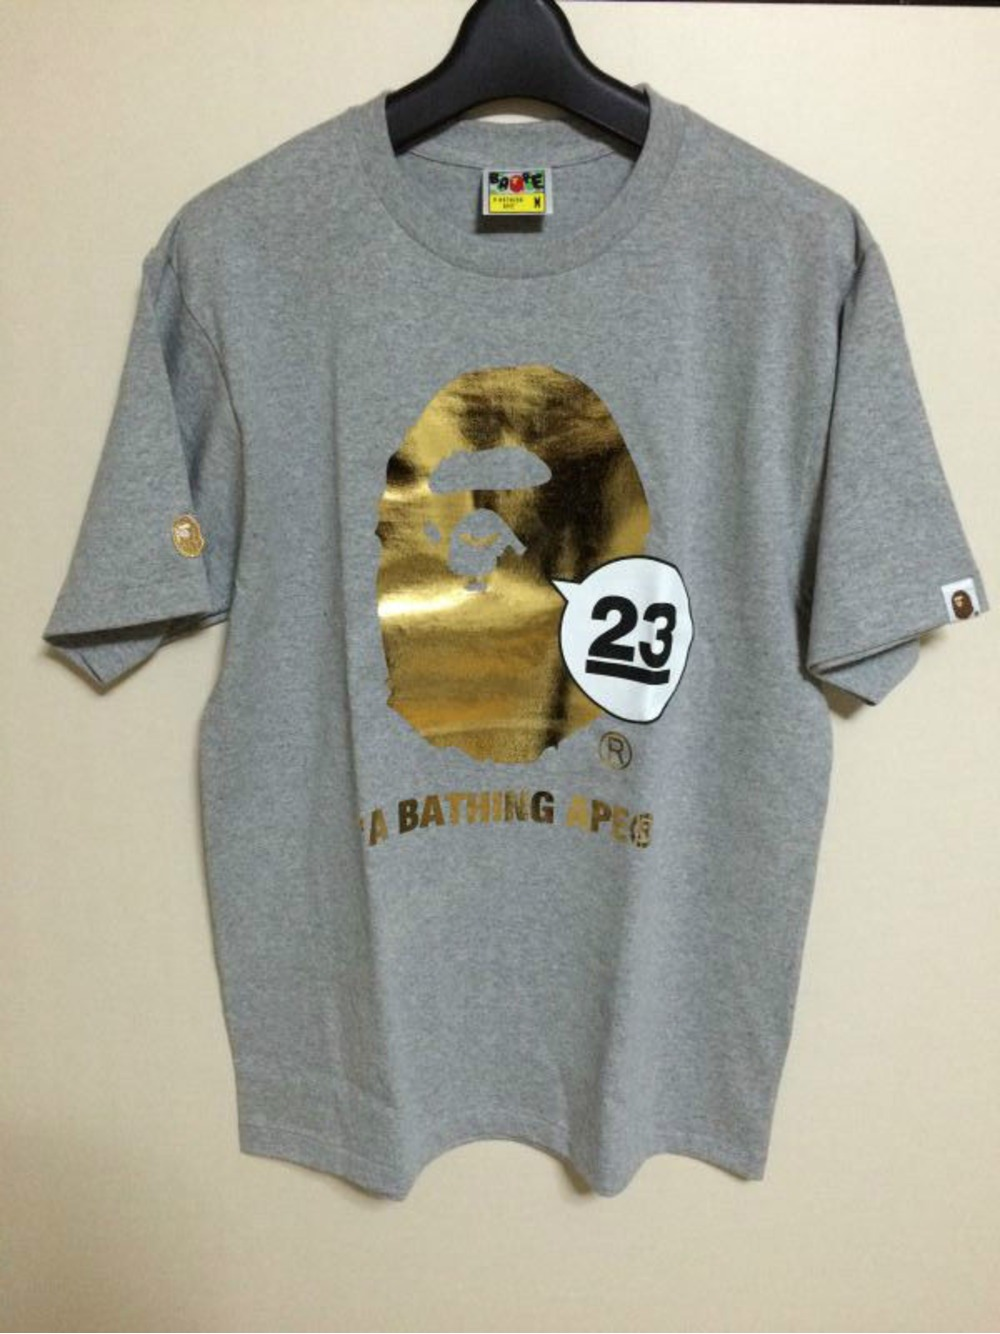 A Bathing Ape Bape Nowhere 23rd Anniversary Tee T Shirt